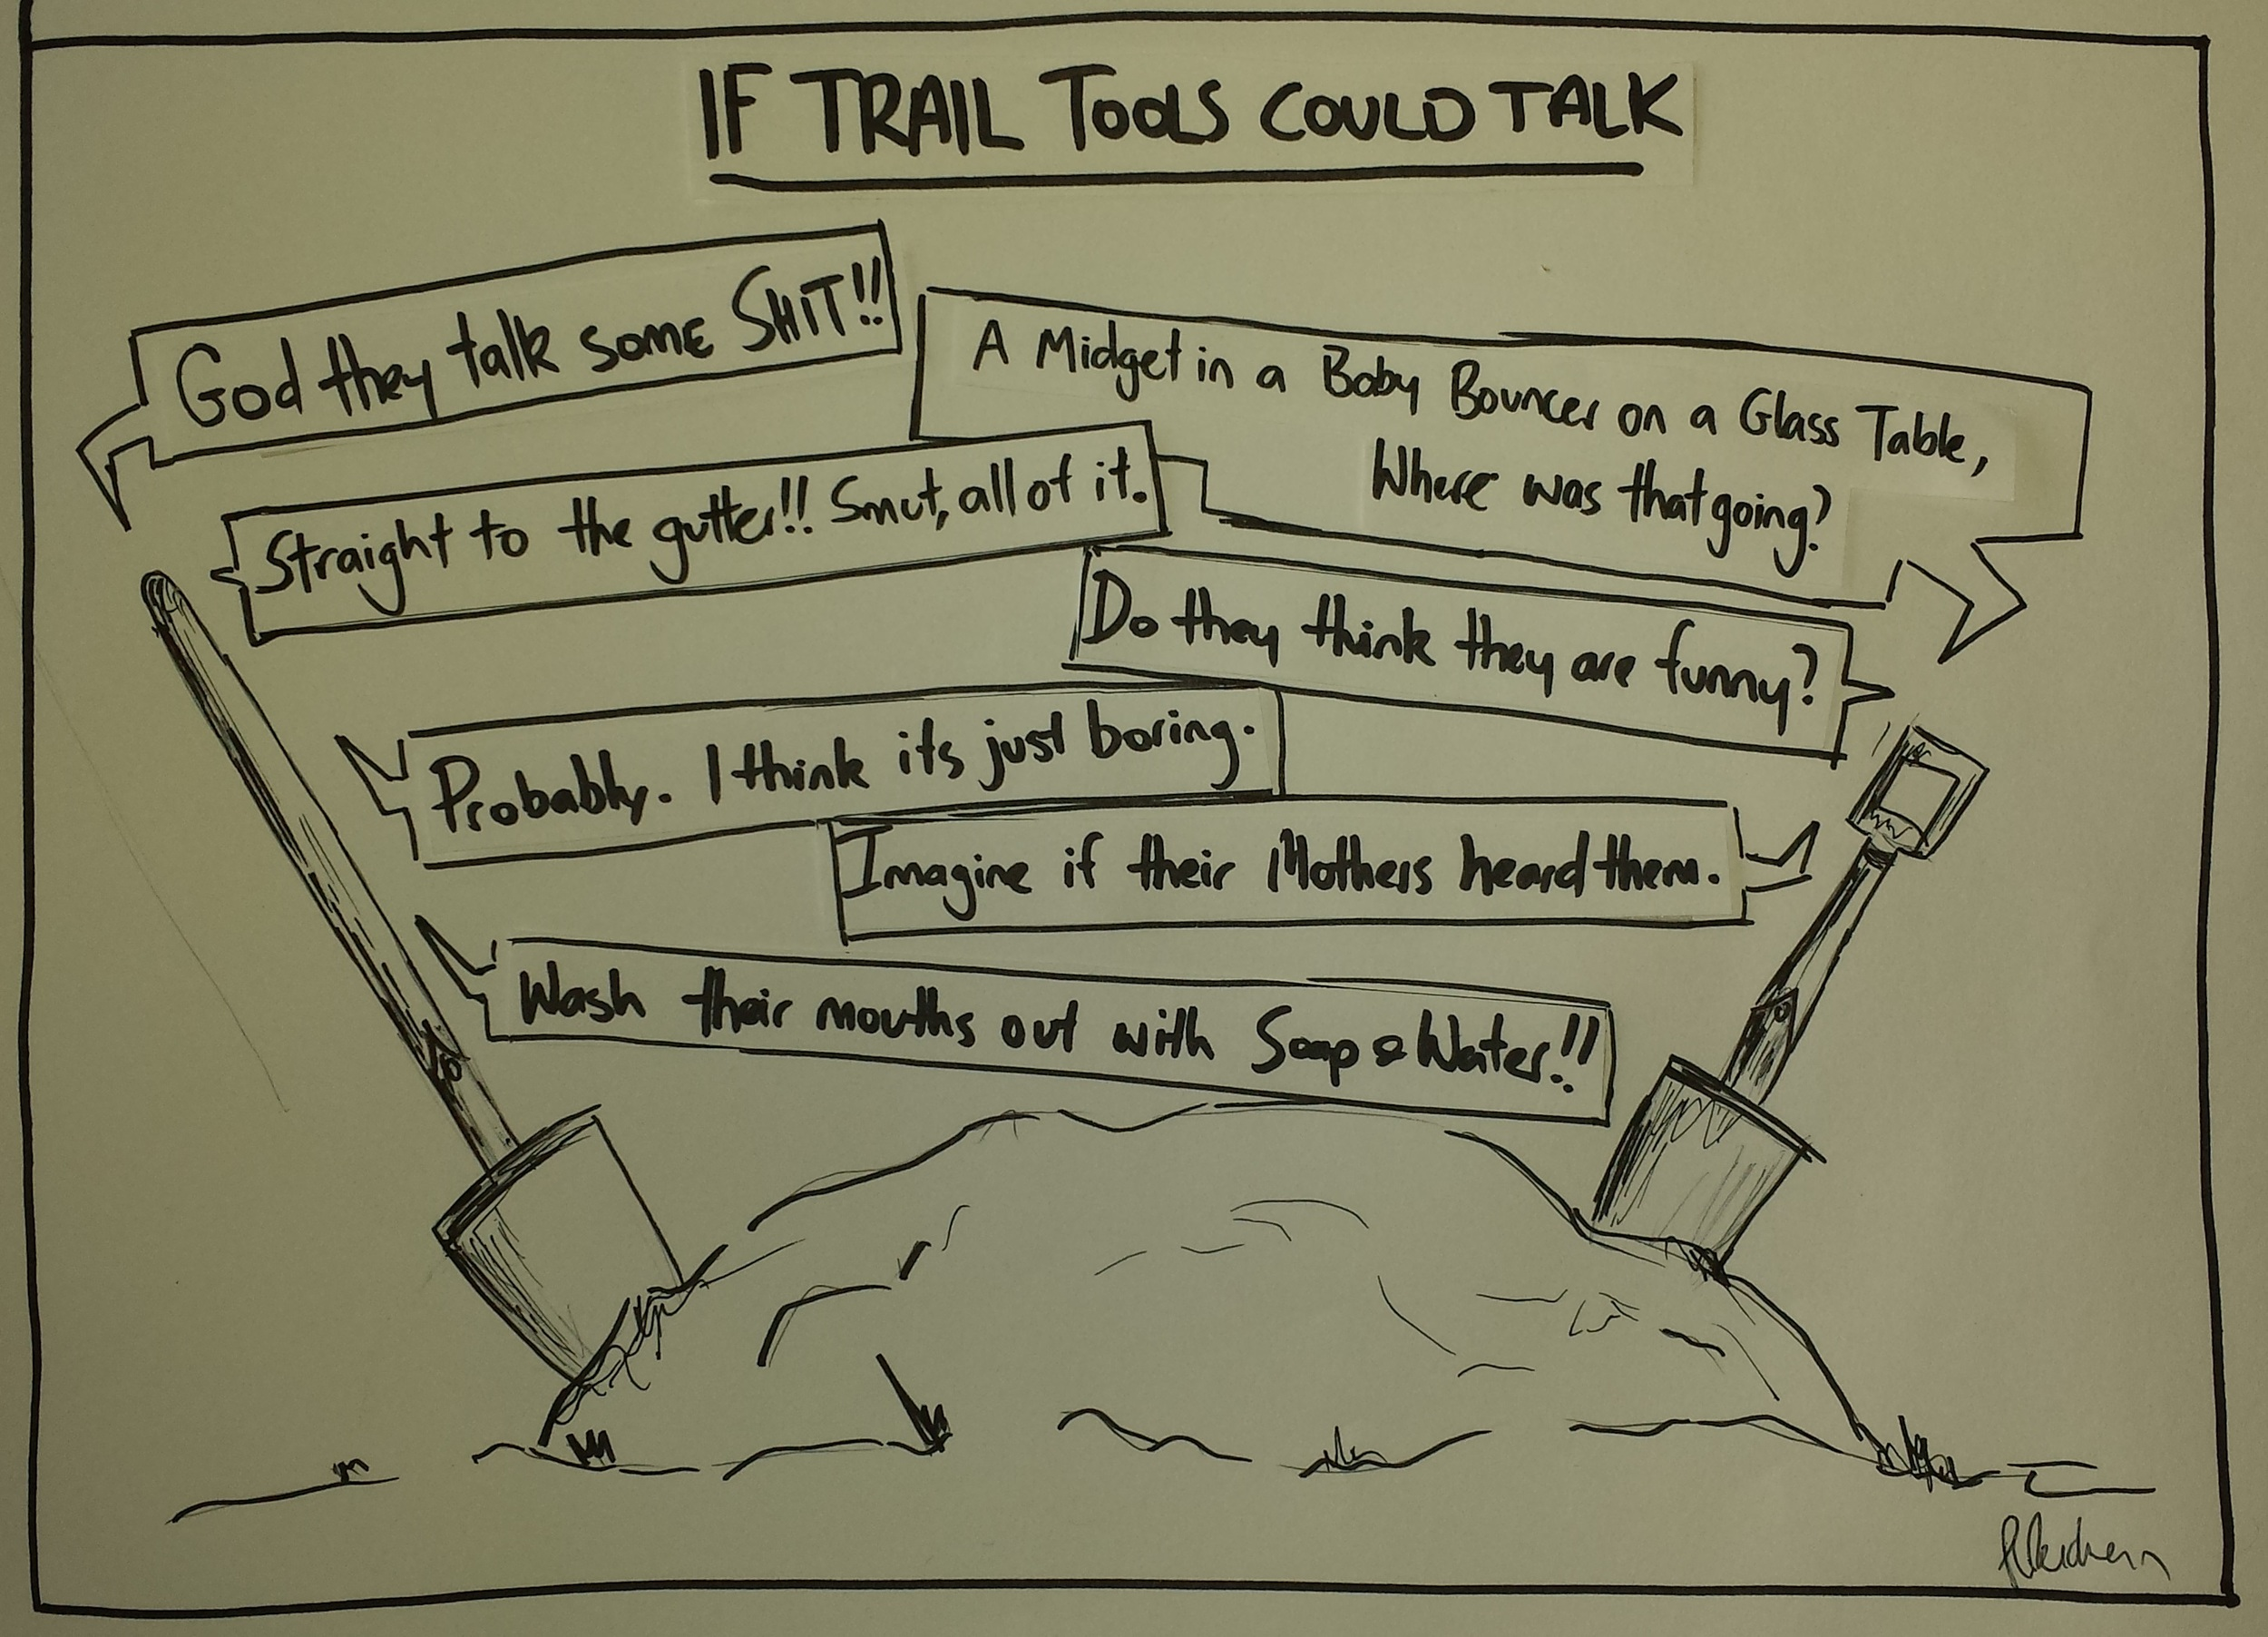 Trail Tool Talk